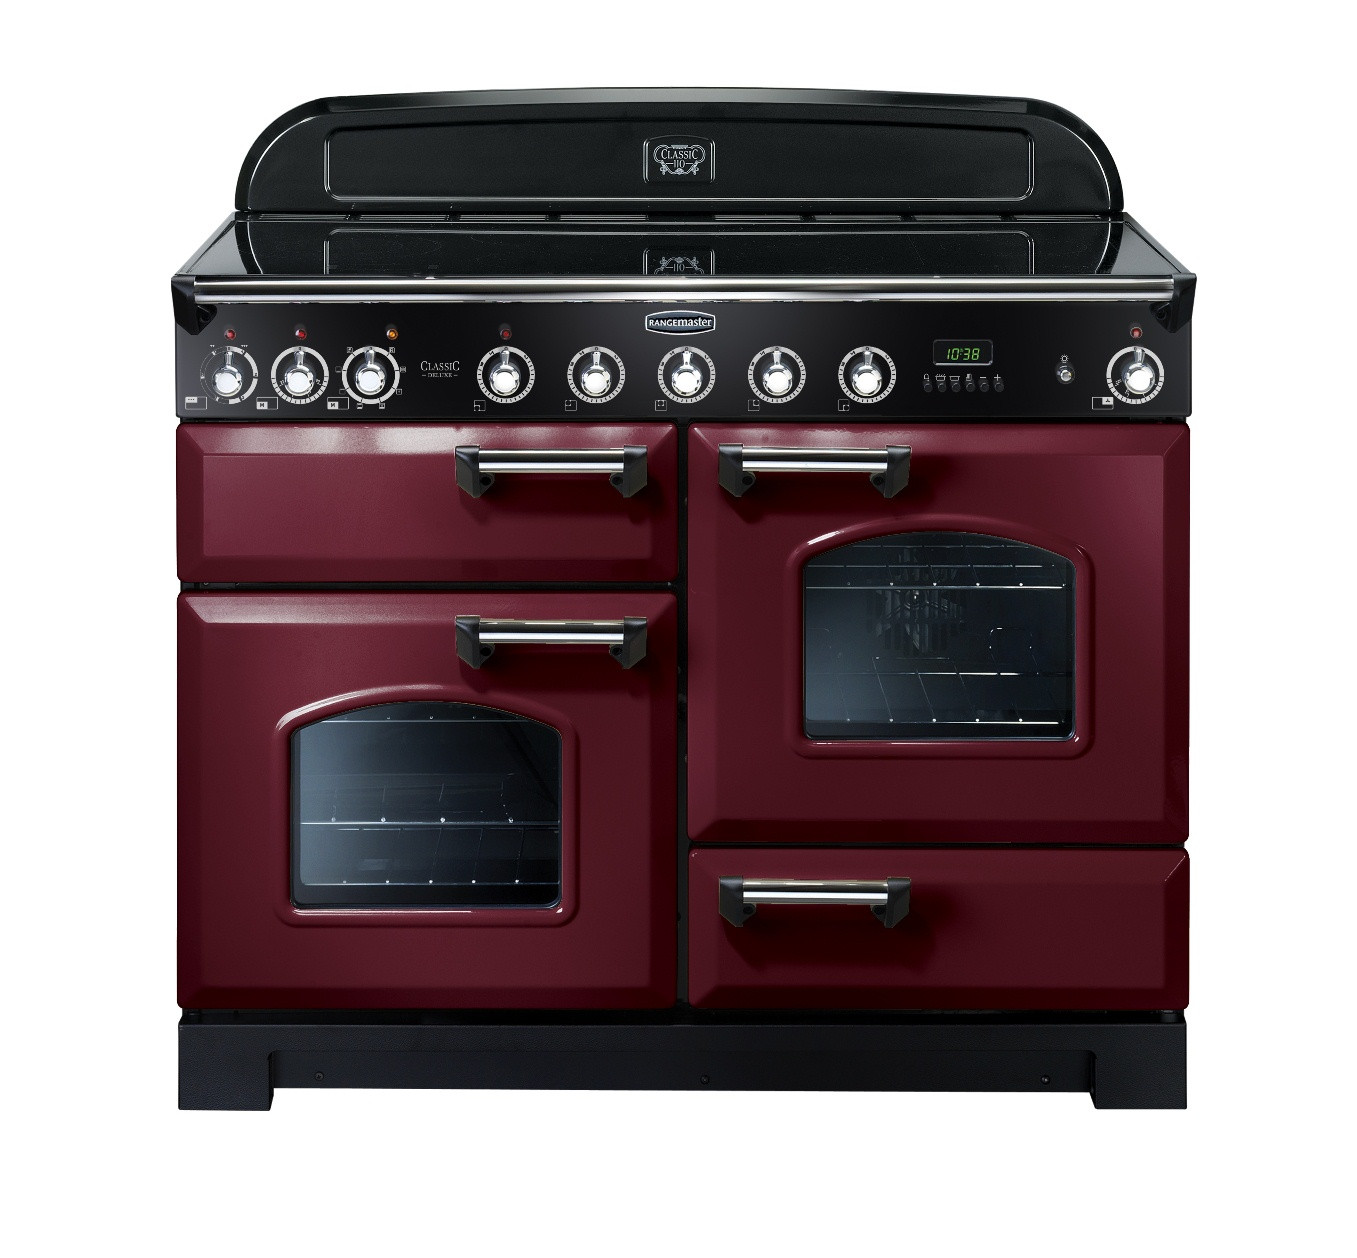 Rangemaster Classic Deluxe 110 Induction Range Cooker Cranberry/Chrome Trim CDL110EICY/C 90400